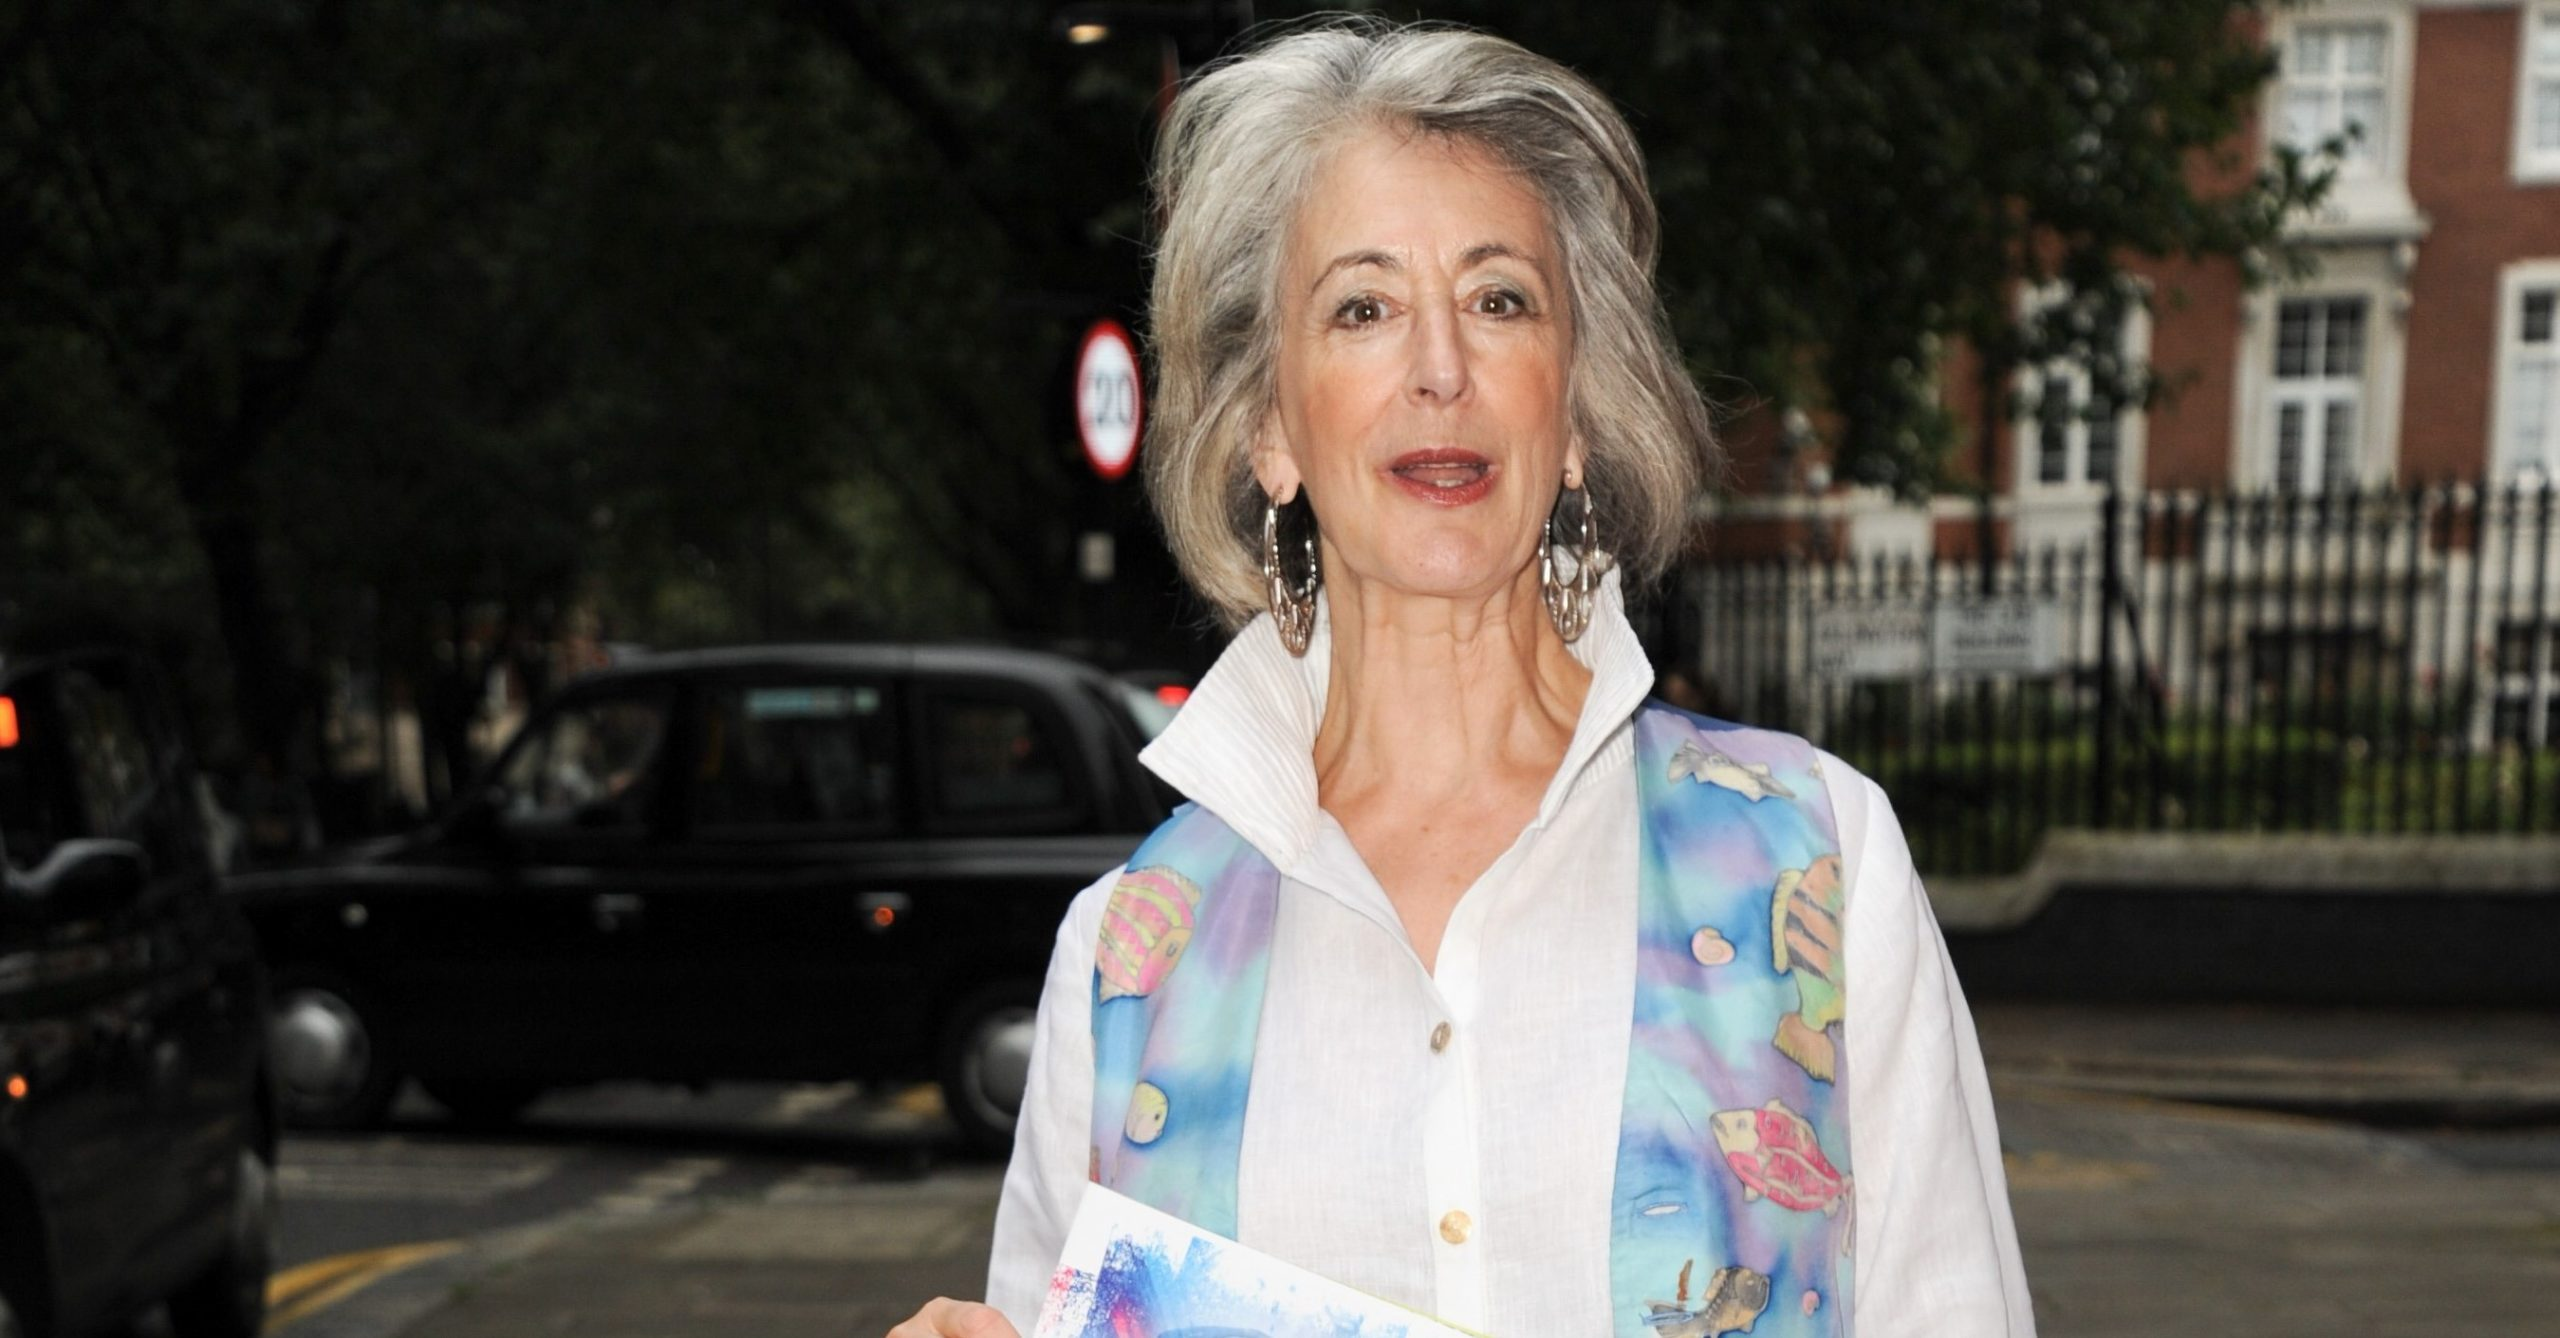 Coronation Street star Maureen Lipman bought car to deal with husband's death